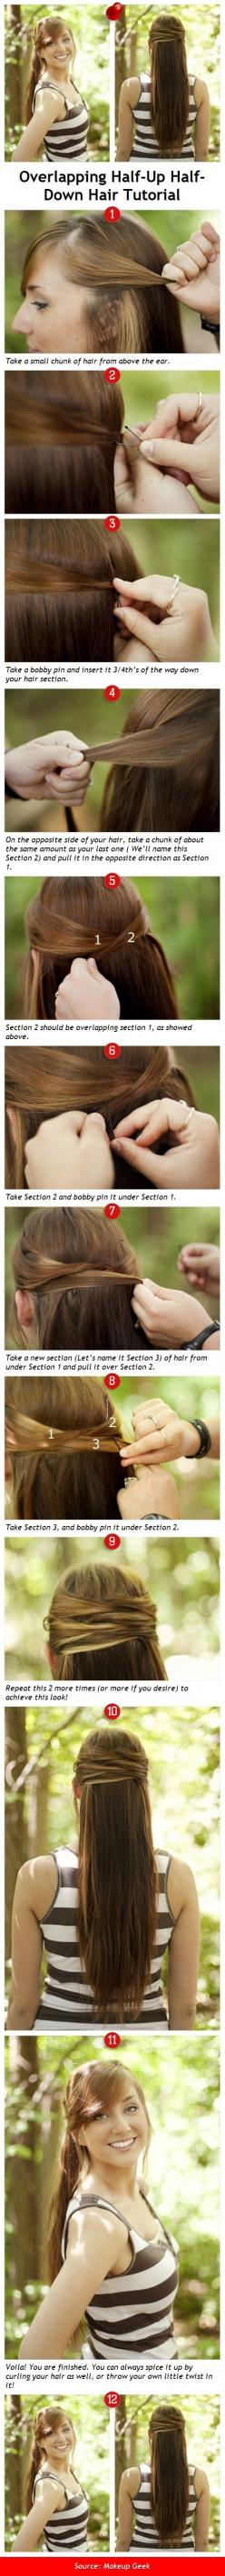 Are you looking for an easy overlapping hairstyle? If so, follow this tutorial.: Overlapping Hair, Hairdos, Hair Styles, Long Hair, Hair Tutorial, Hair Do, Hairstyle, Half Down Hair, Overlapping Half Up